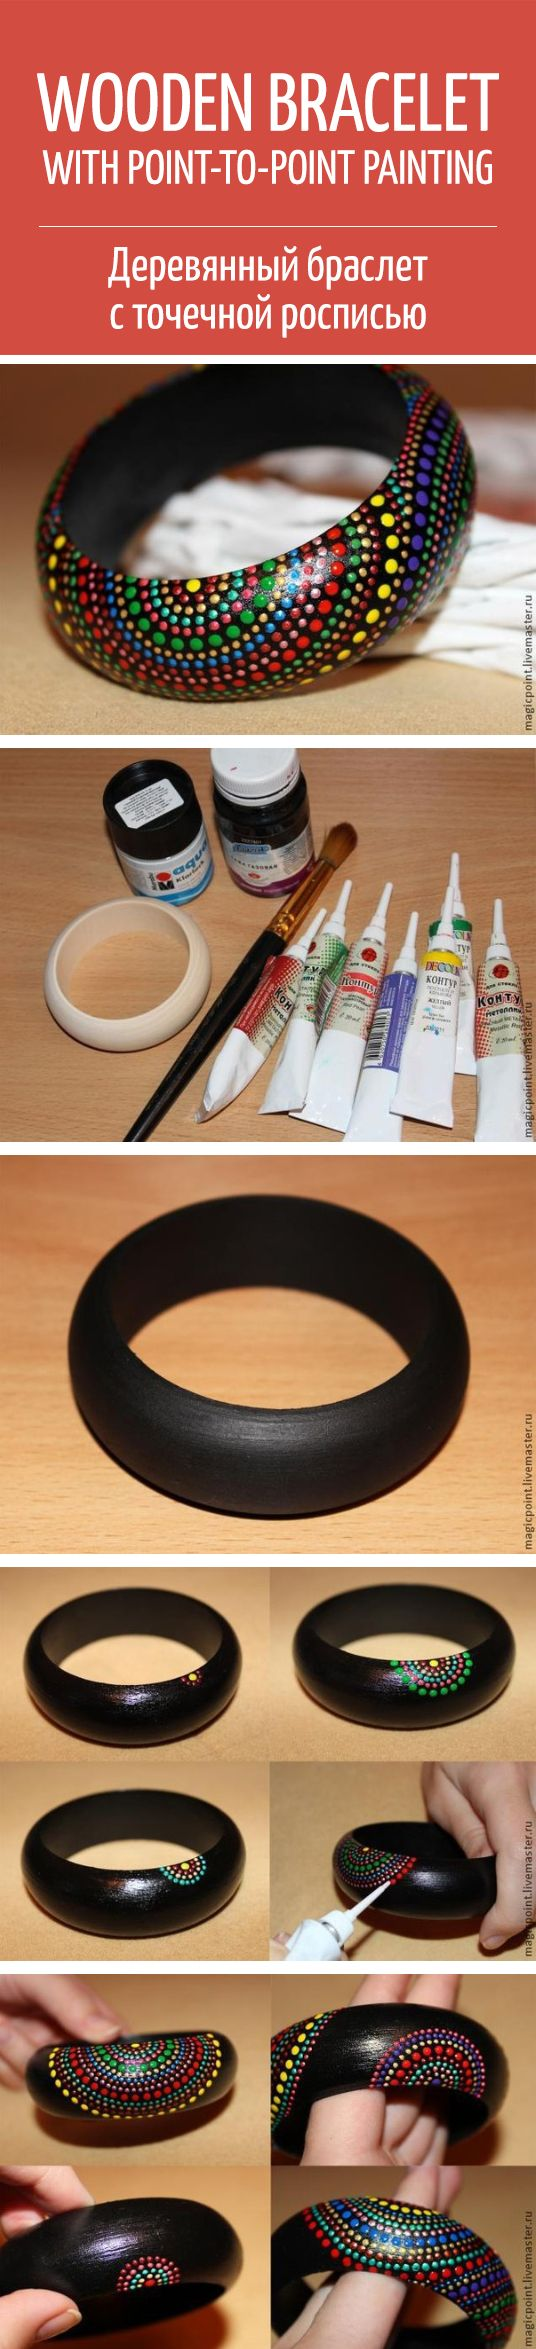 Wooden bracelet with point-to-point painting tutorial / Браслет с точечной росписью